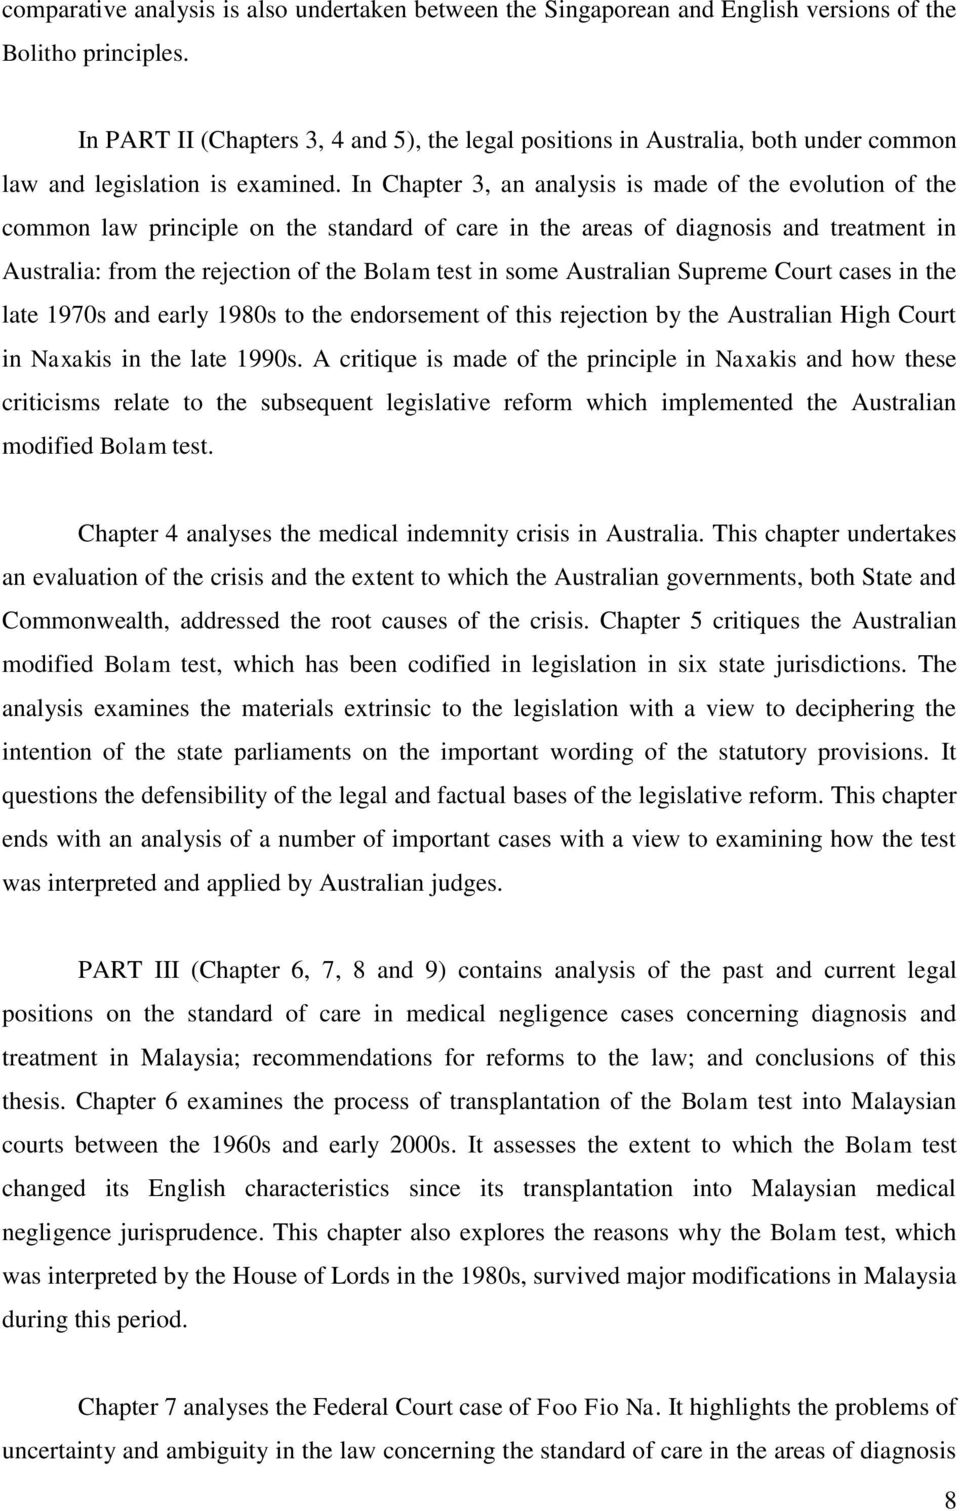 In Chapter 3, an analysis is made of the evolution of the common law principle on the standard of care in the areas of diagnosis and treatment in Australia: from the rejection of the Bolam test in